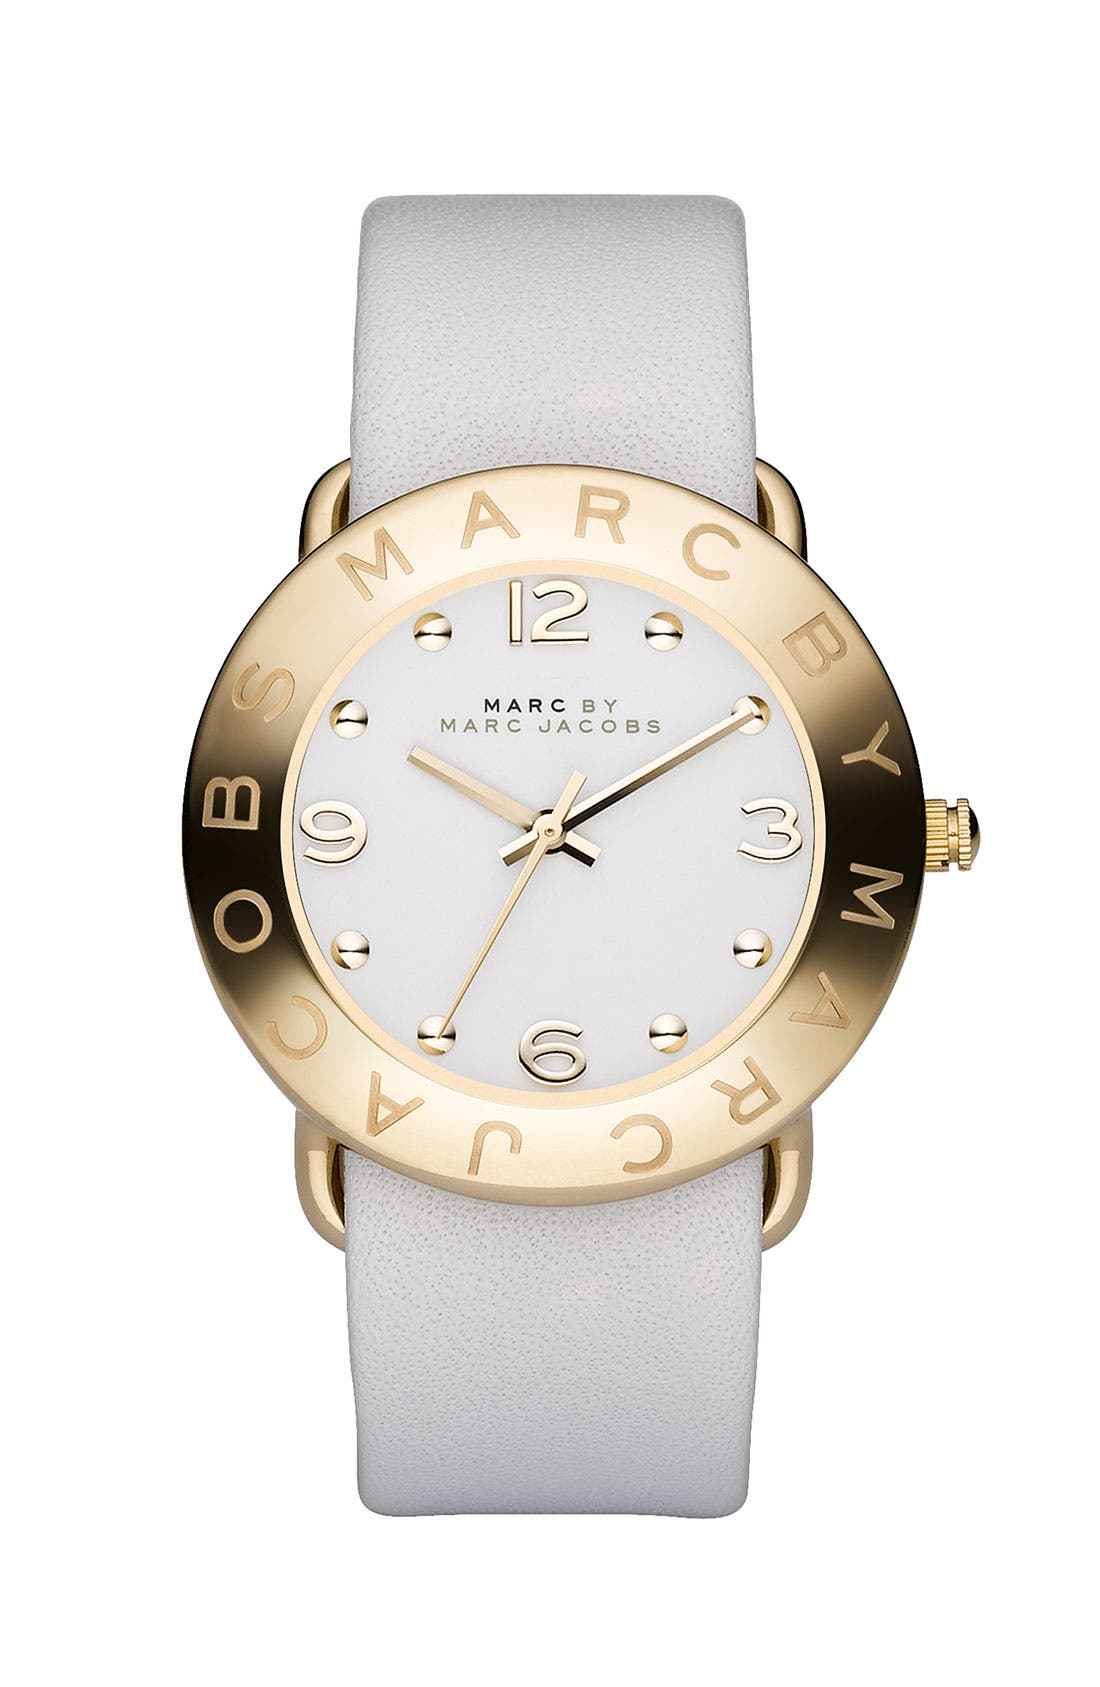 Main Image - MARC JACOBS 'Amy' Leather Strap Watch, 36mm